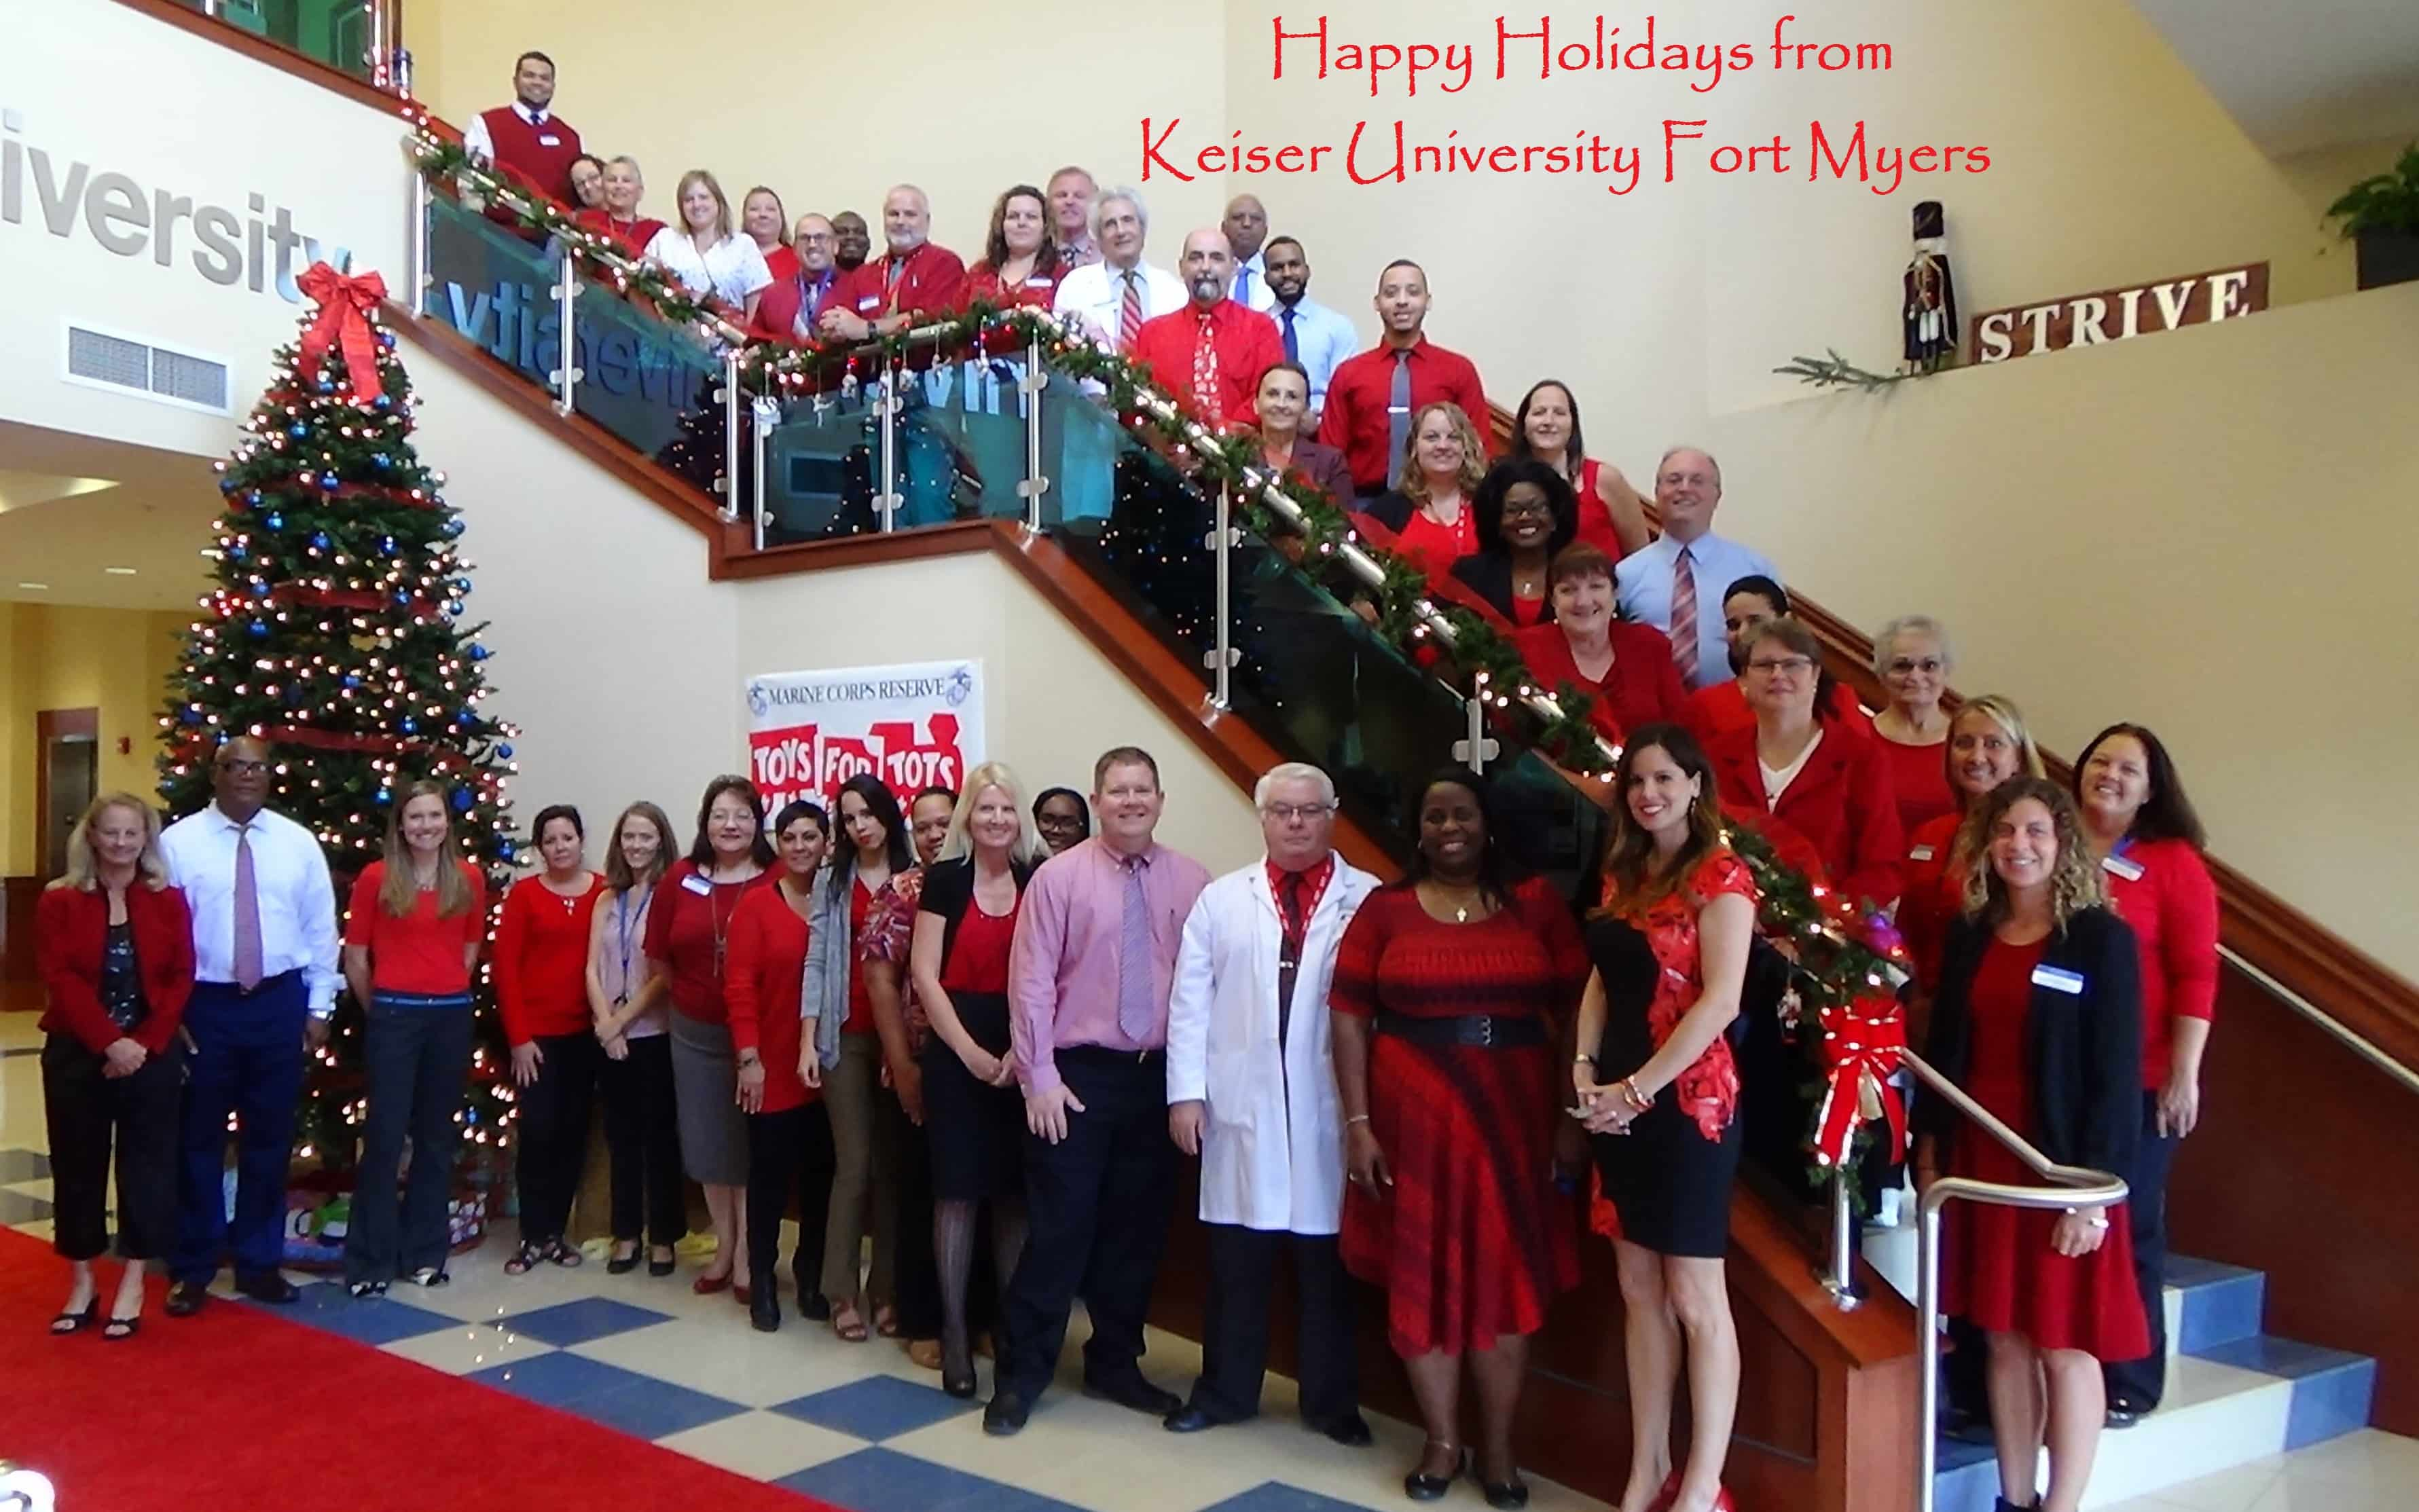 HAPPY HOLIDAYS FROM THE FT. MYERS CAMPUS